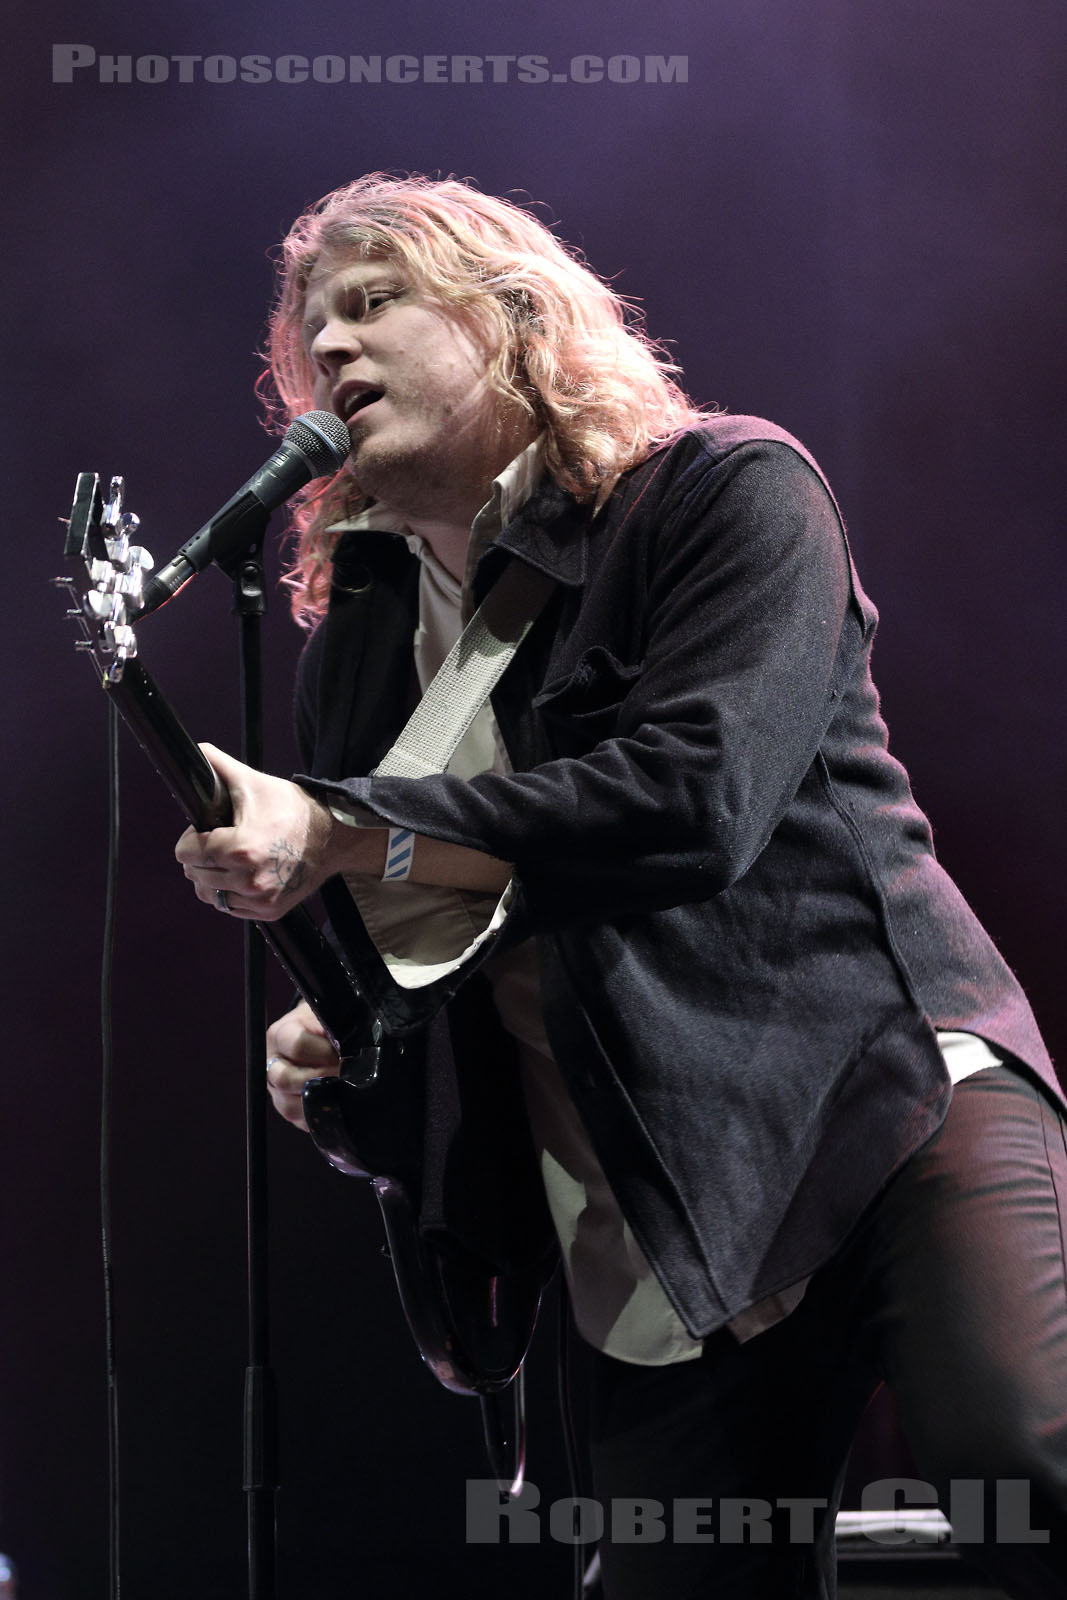 TY SEGALL AND THE FREEDOM BAND - 2018-06-02 - NIMES - Paloma - Flamingo